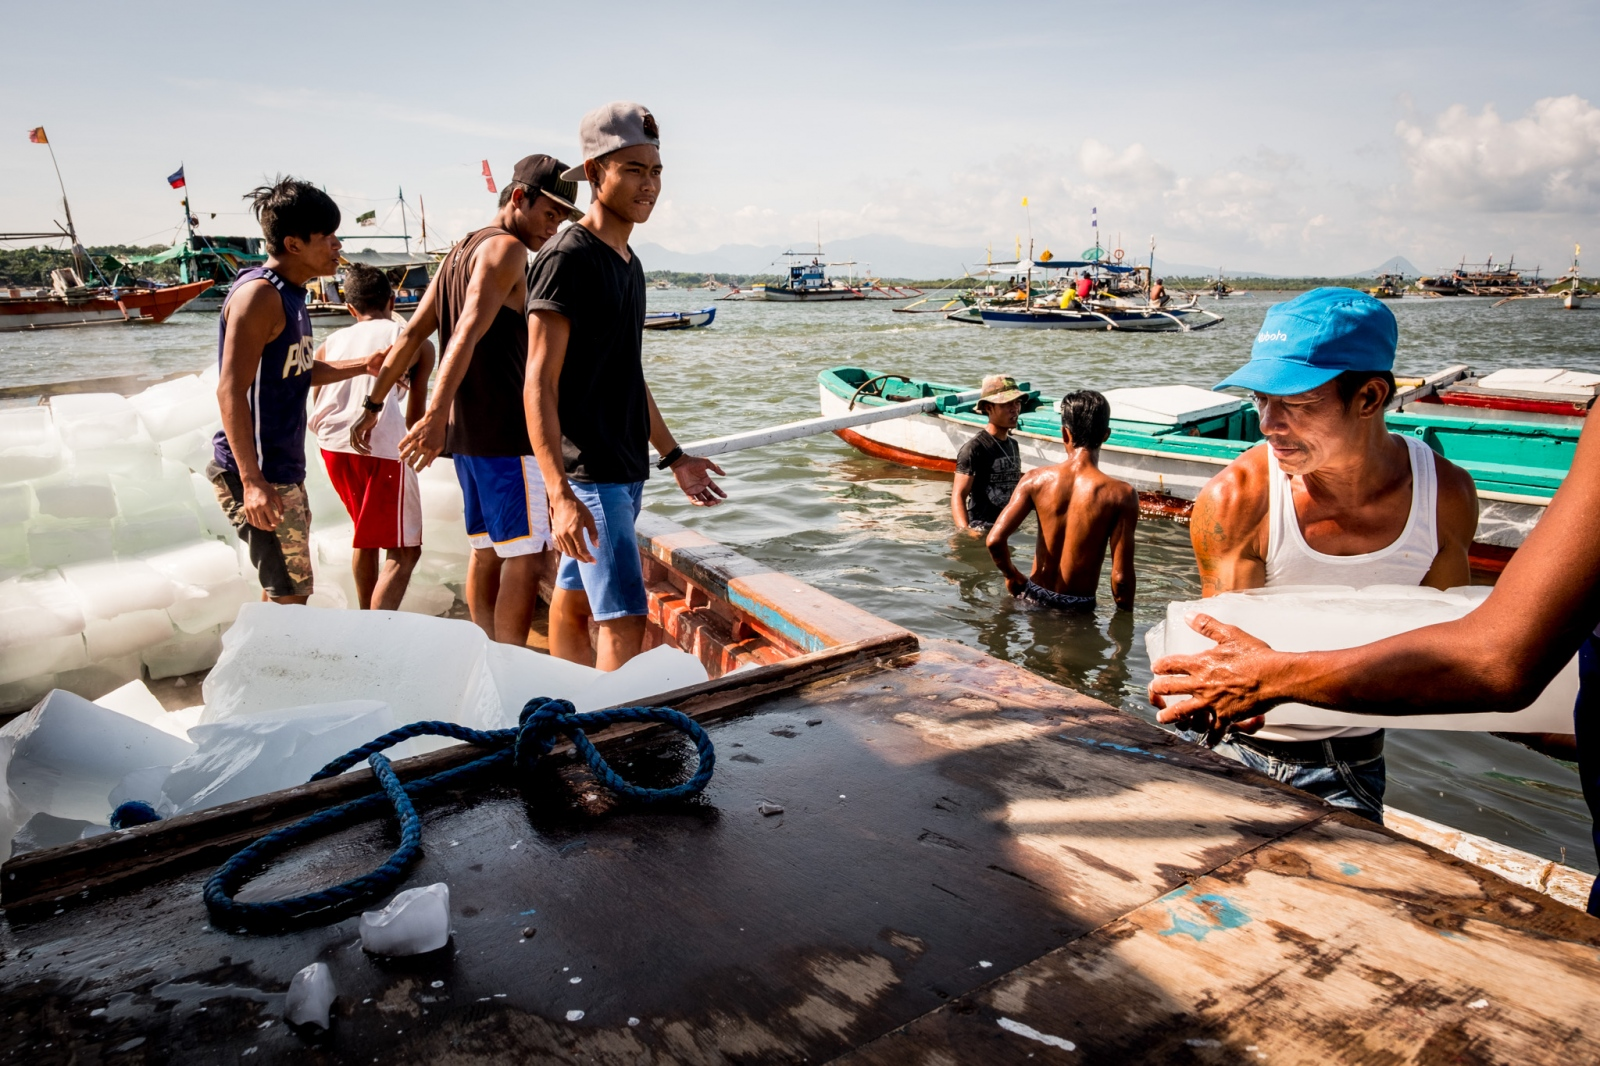 Art and Documentary Photography - Loading Fisheries022.jpg